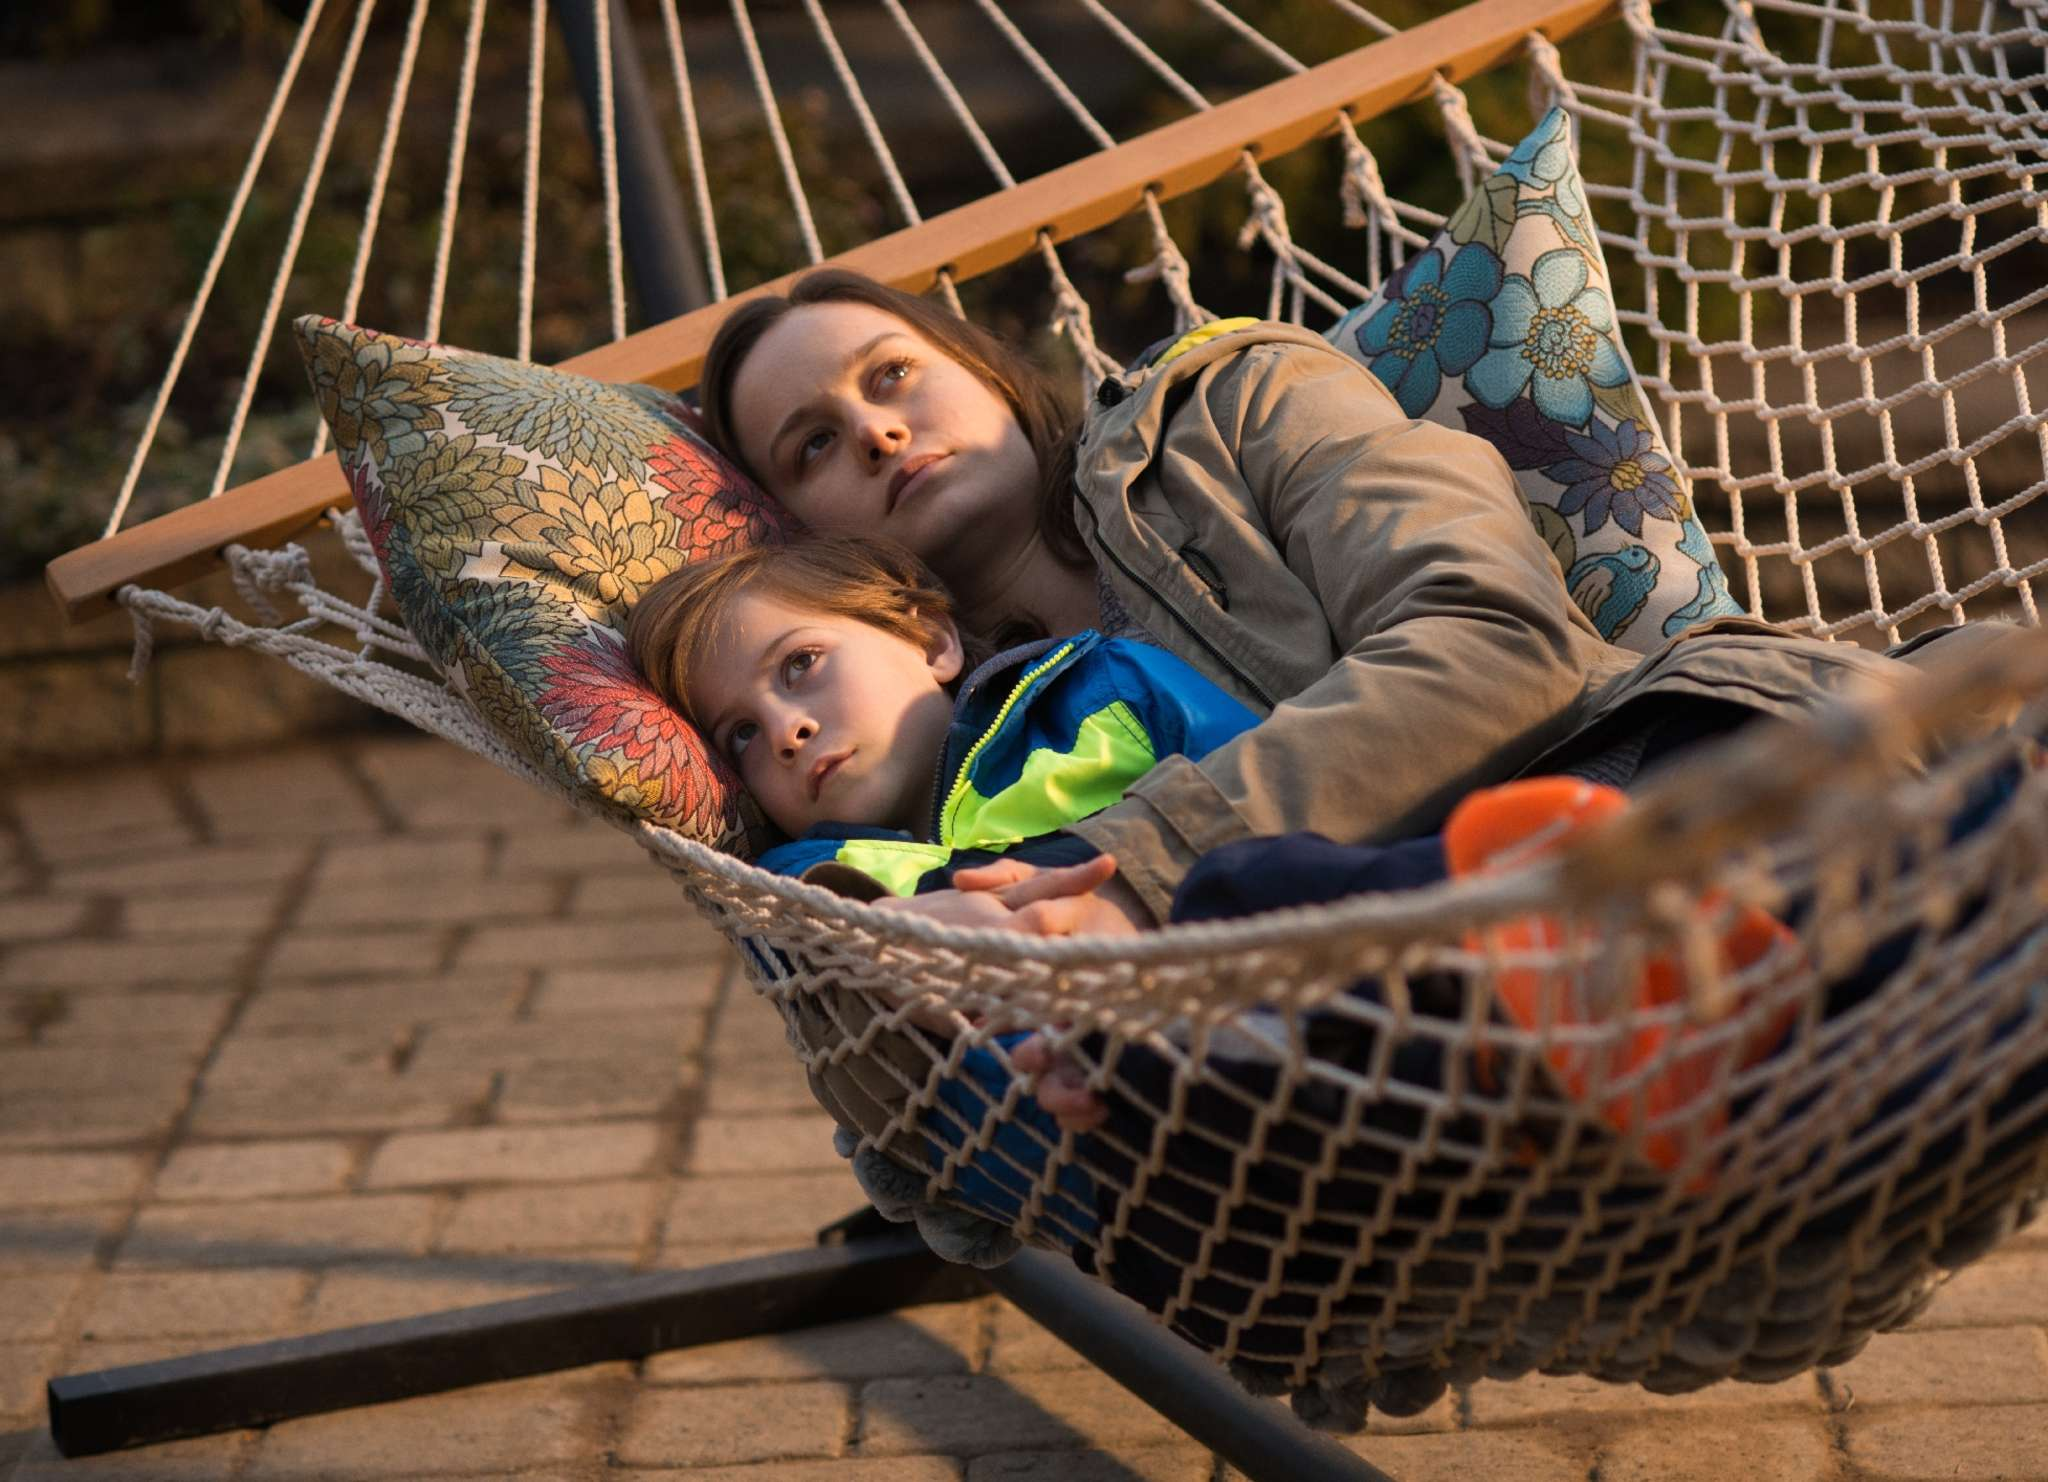 """Room"" costars Brie Larson and Jacob Tremblay as mother and son imprisoned for the first half of the film in a tiny, ill-lighted shed. To research her role in the tense, suspenseful film, Larson and director Lenny Abrahamson consulted a trauma expert."